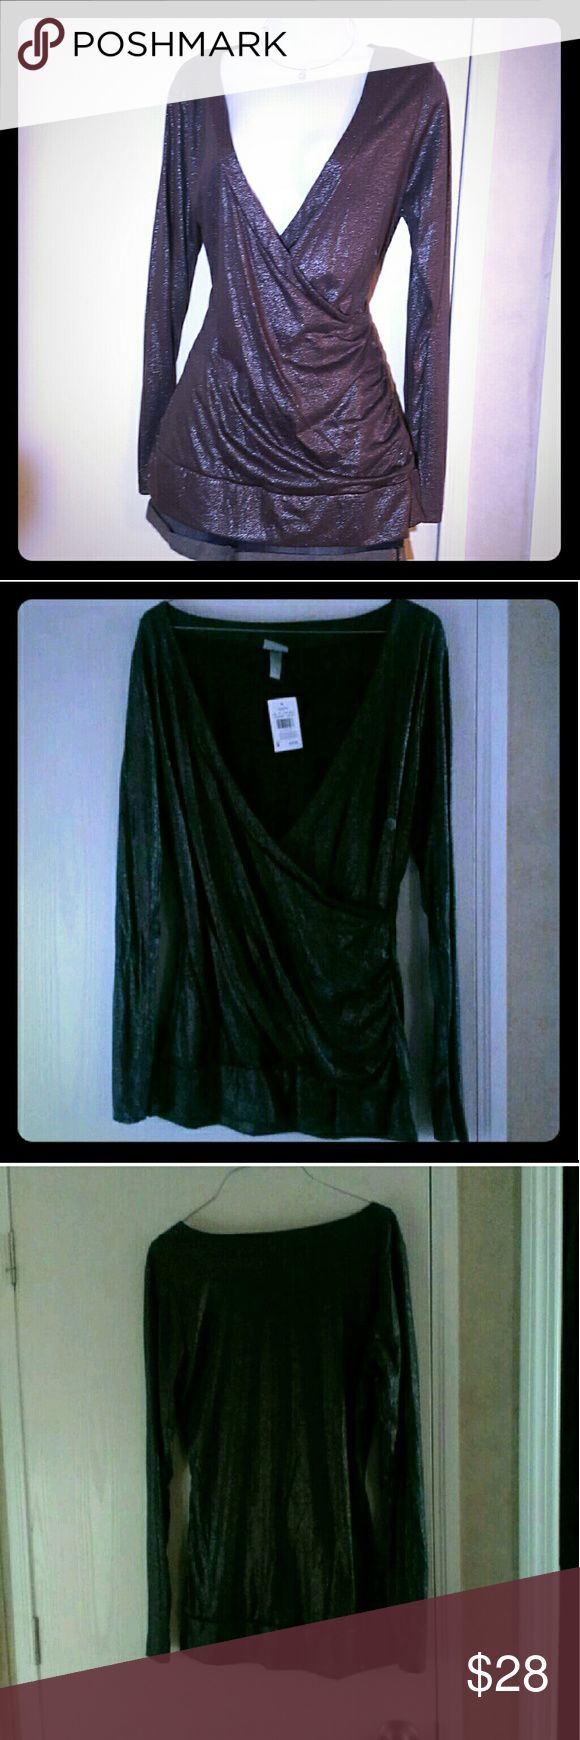 Sparkly Charcoal Slate Grey Deep V Plunge Silver Sparkly grey shirt from Vanity, size large, new with tags. Great for new year's parties!  Deep V-neck for a sexy look, or wear a cami underneath for a more conservative look.   Smoke free home. I will gladly bundle items to give you a discount (the more you buy, the cheaper I can let everything go!). Many items can be added on for only $1.  MAKE AN OFFER! Vanity Tops Blouses